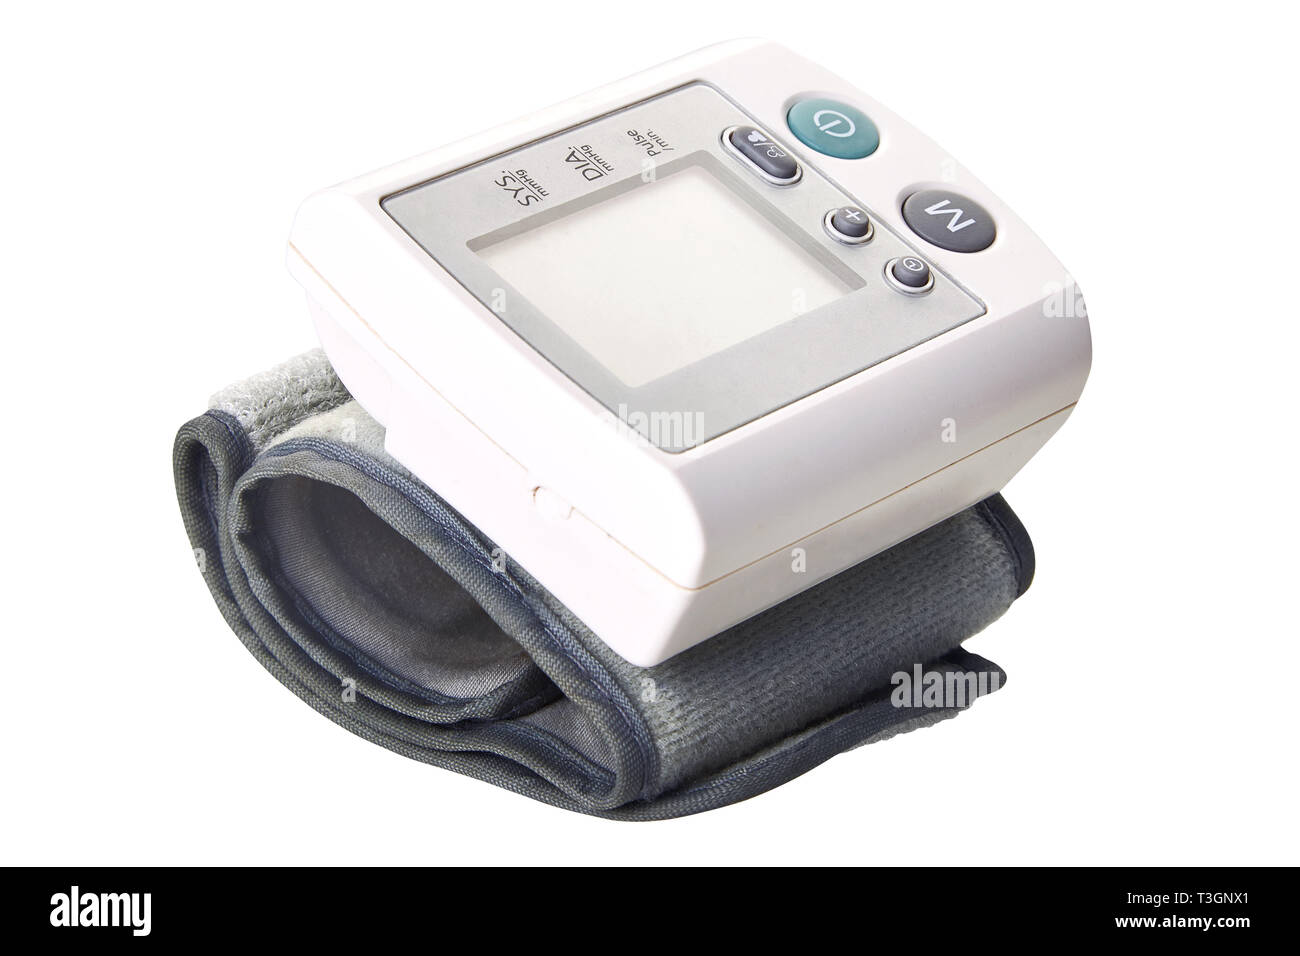 Portable digital blood pressure monitor. Wrist tonometer. Isolated on white background. Blood Pressure Monitor on white background. Medical equipment. - Stock Image